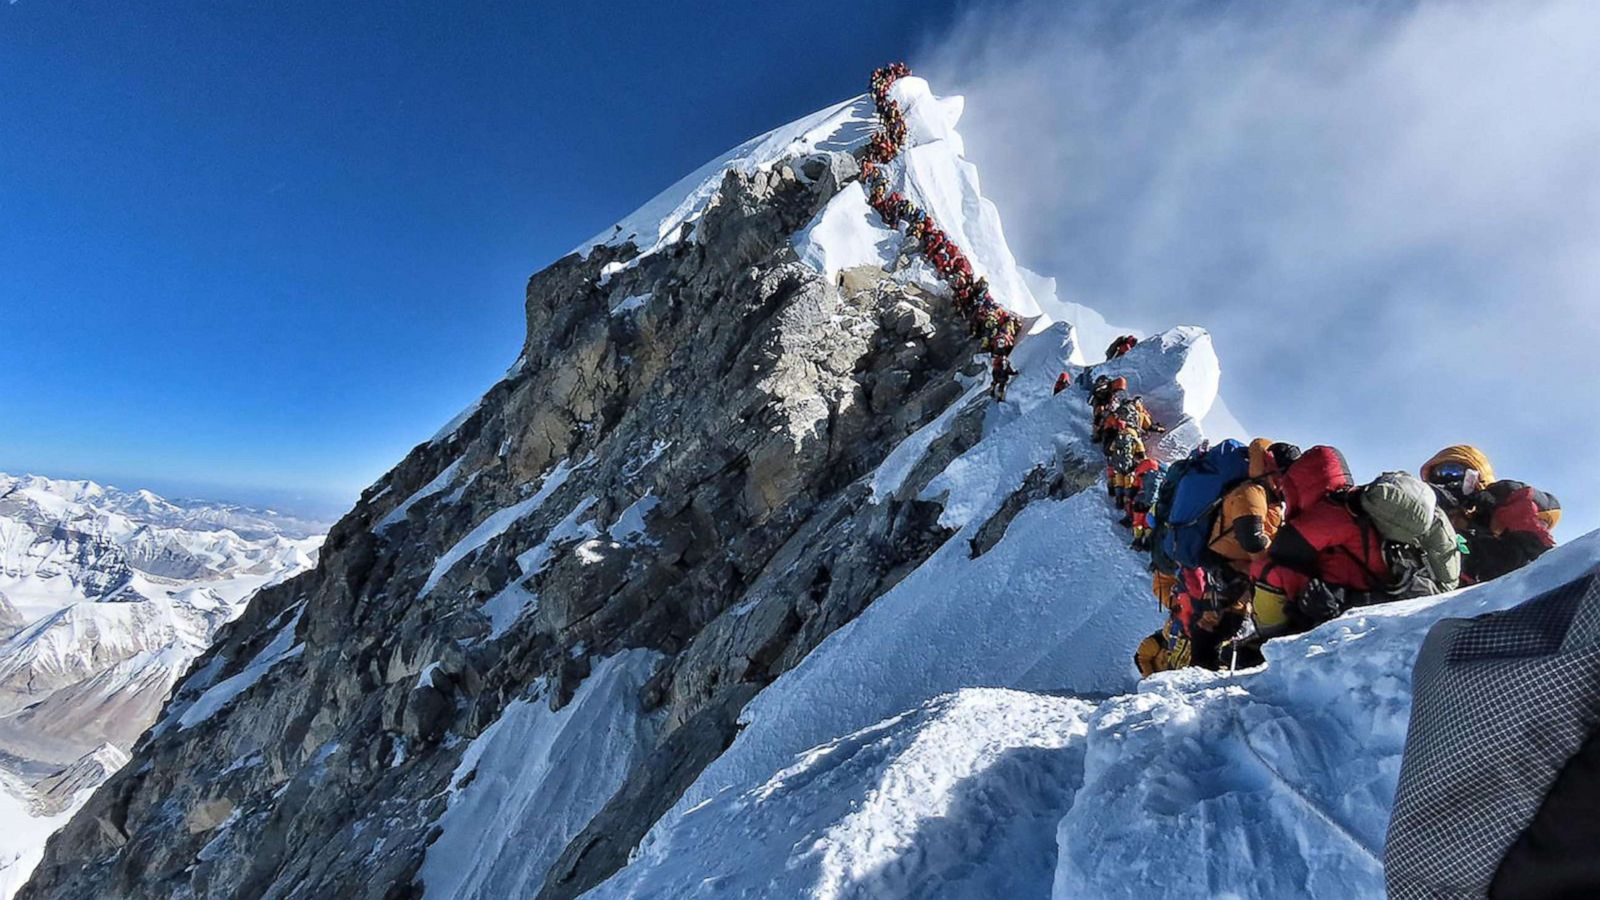 10th Death In 2 Months Reported On Mount Everest Amid Long